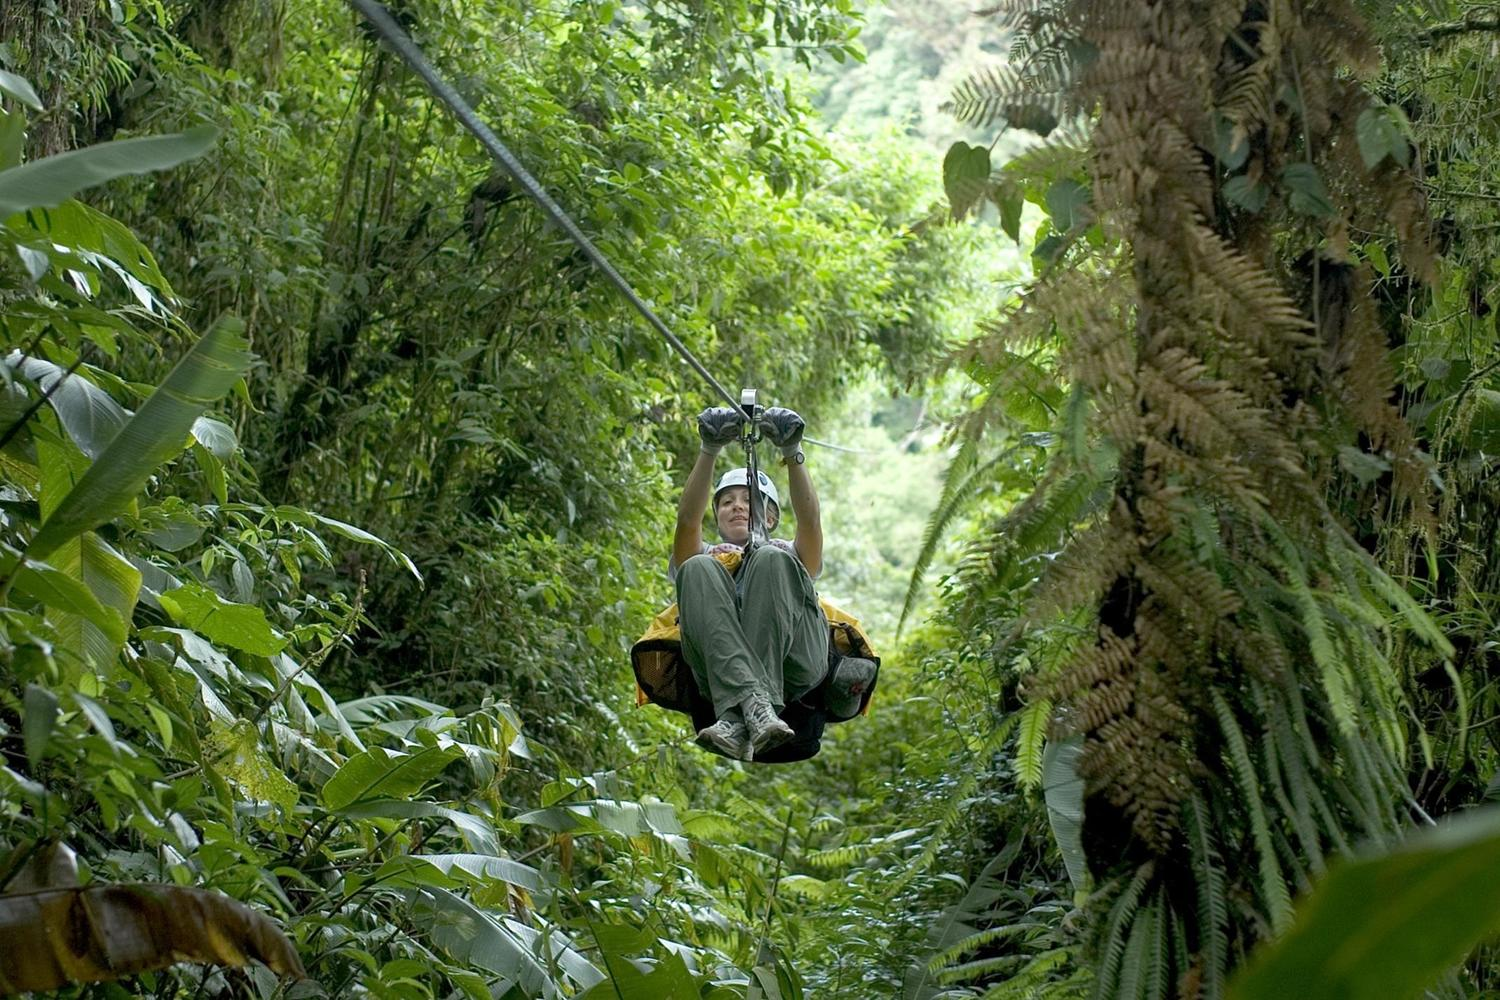 Exhilarating zip lining in the forests of Costa Rica